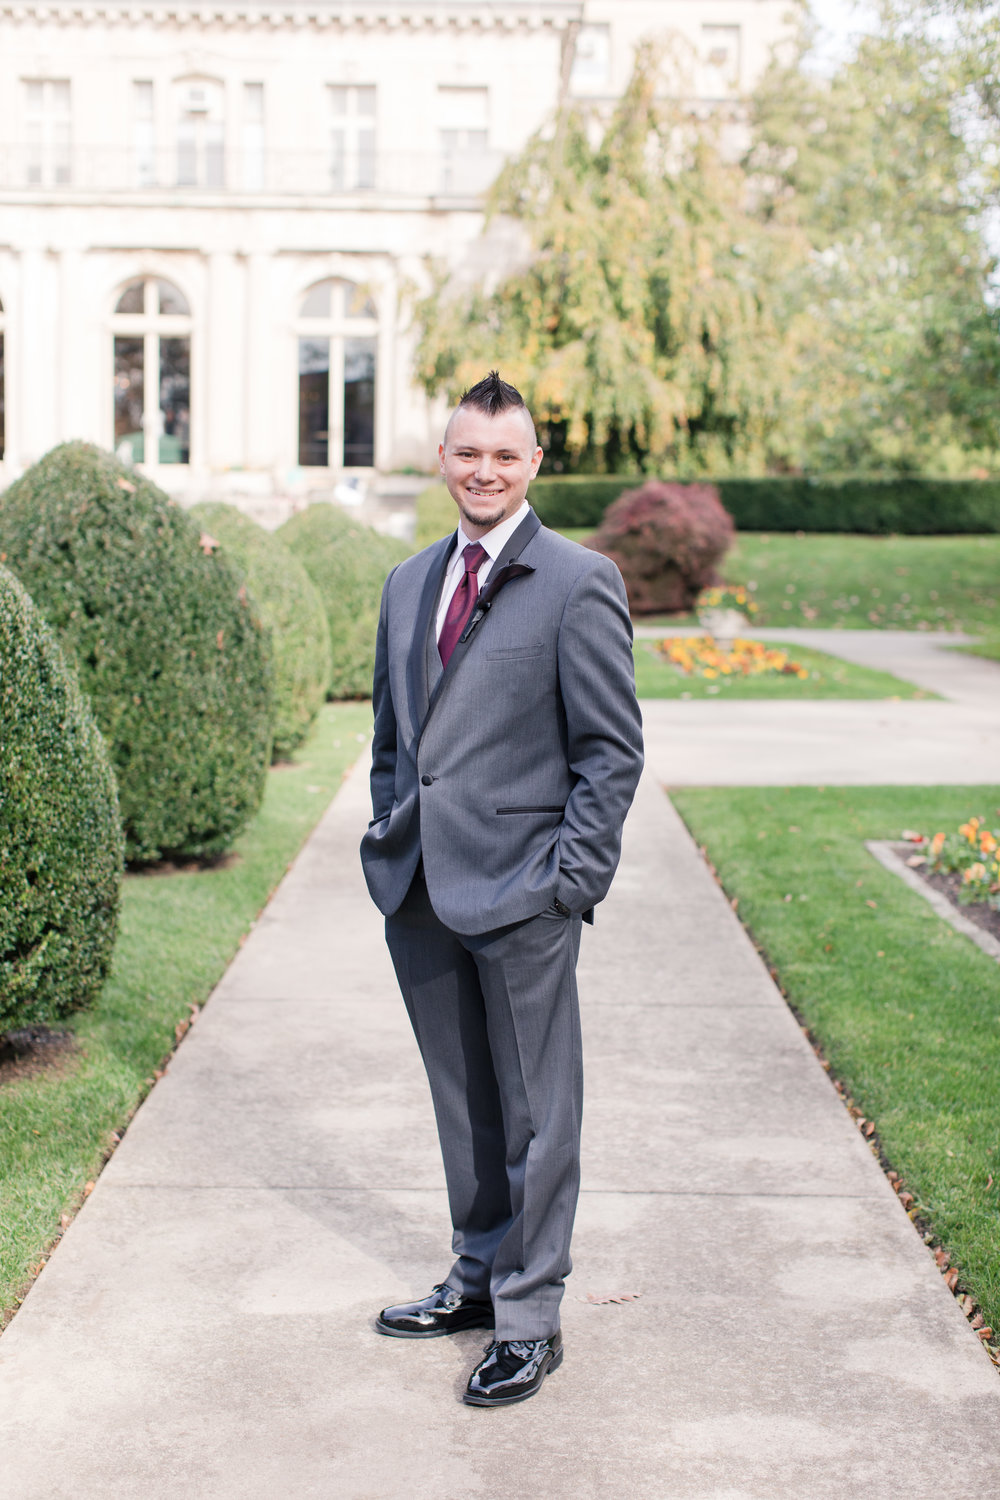 Groom in gray and black suit posing at Monmouth University